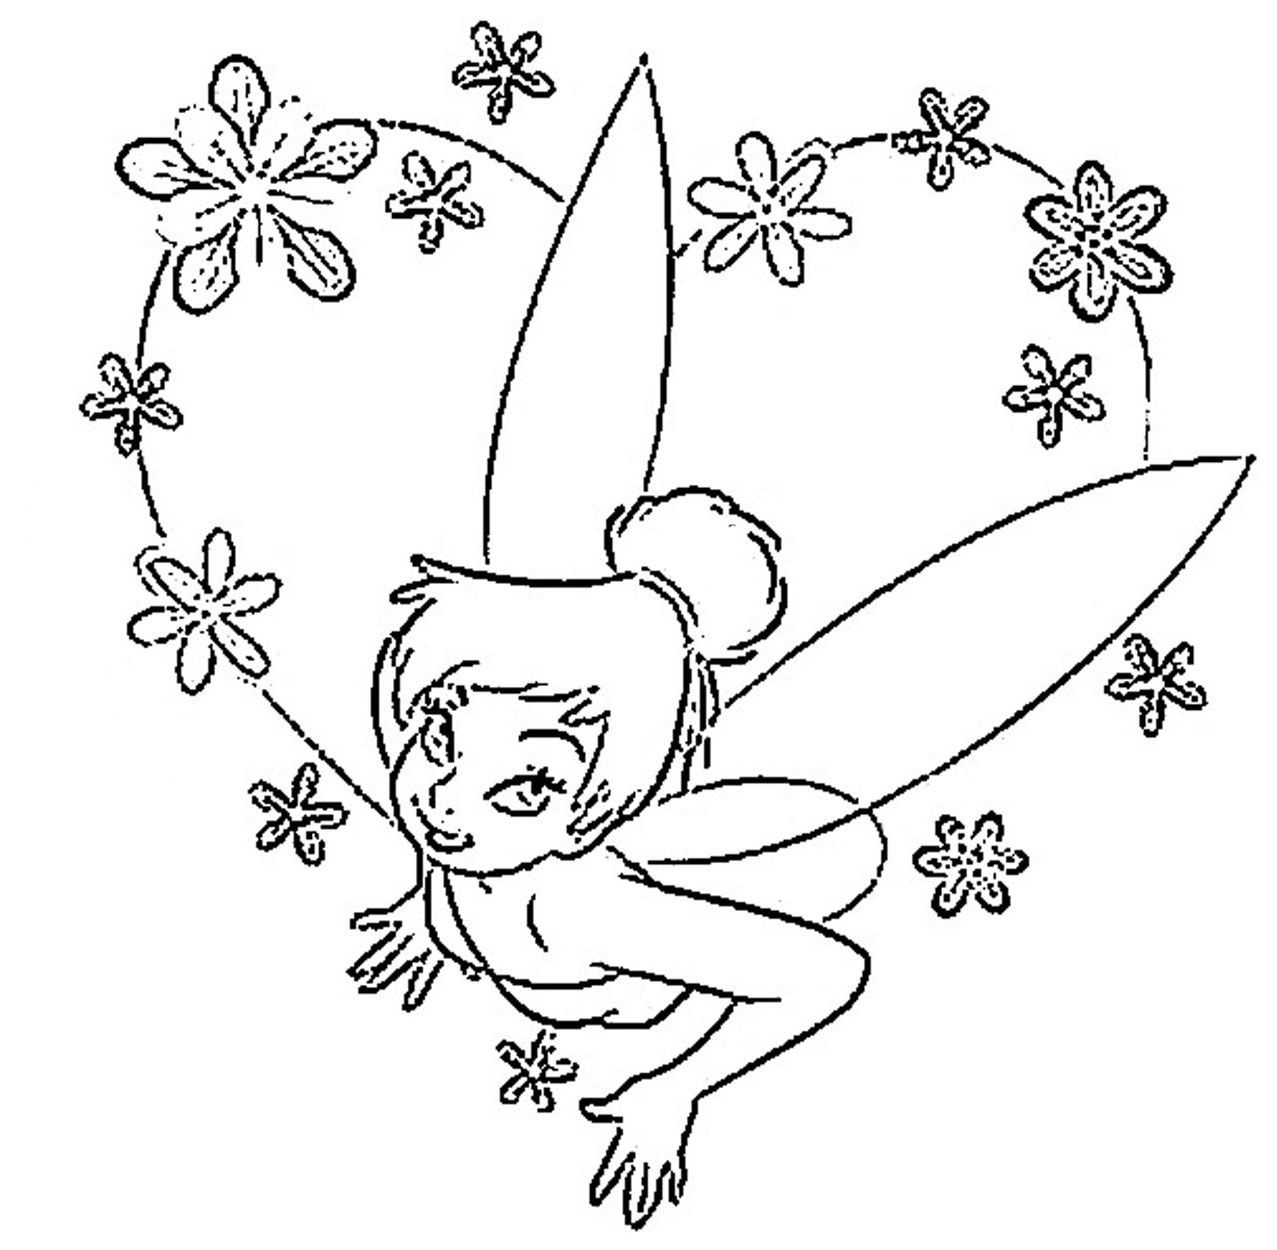 Tinkerbell Halloween Coloring Pages - Coloring Home